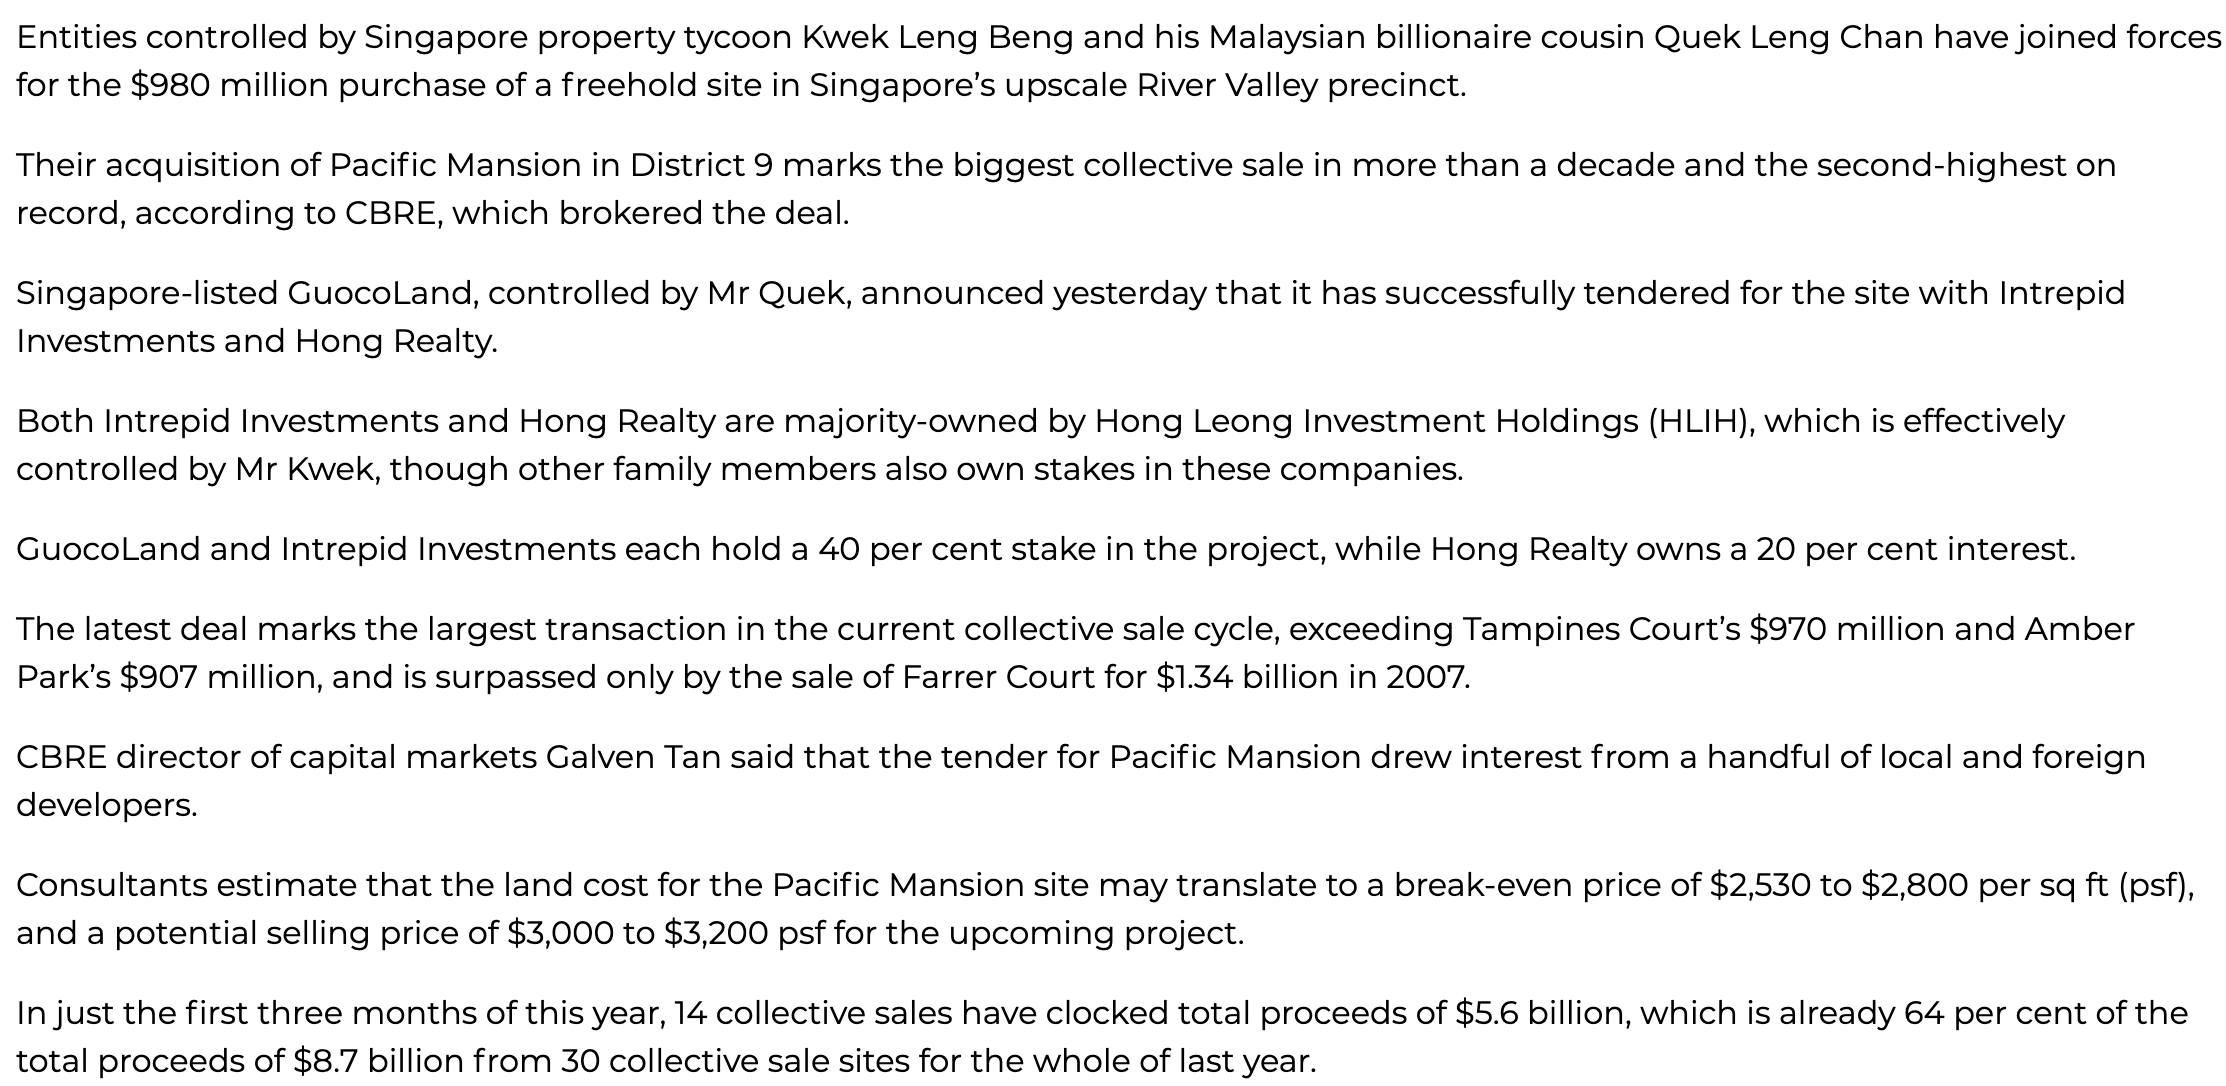 pacific-mansion-sold-en-bloc-for-$980m-in-second-highest-deal-1